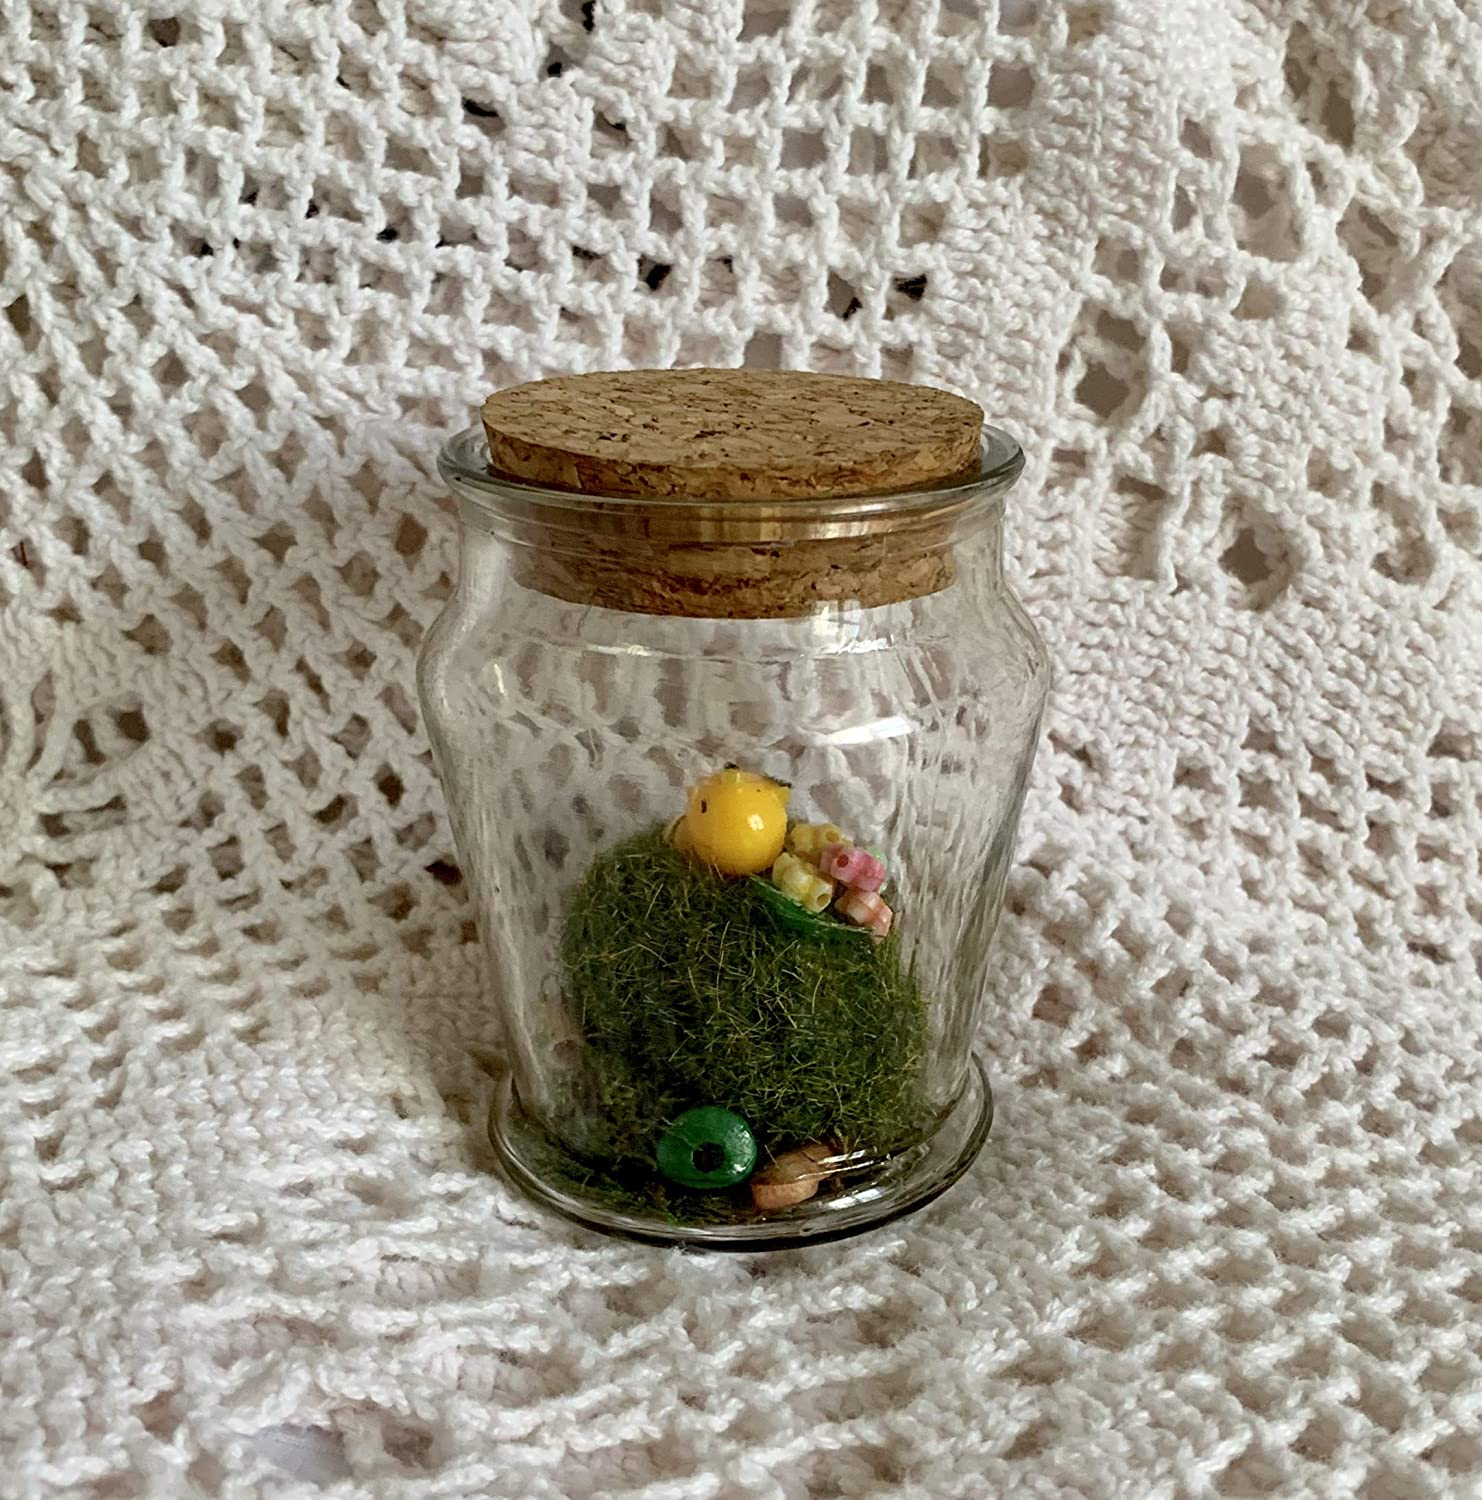 Tiny Cheap super special price Bumble Bee Upcycled Cheap sale Succulent Honey Bees Garden - Terrarium